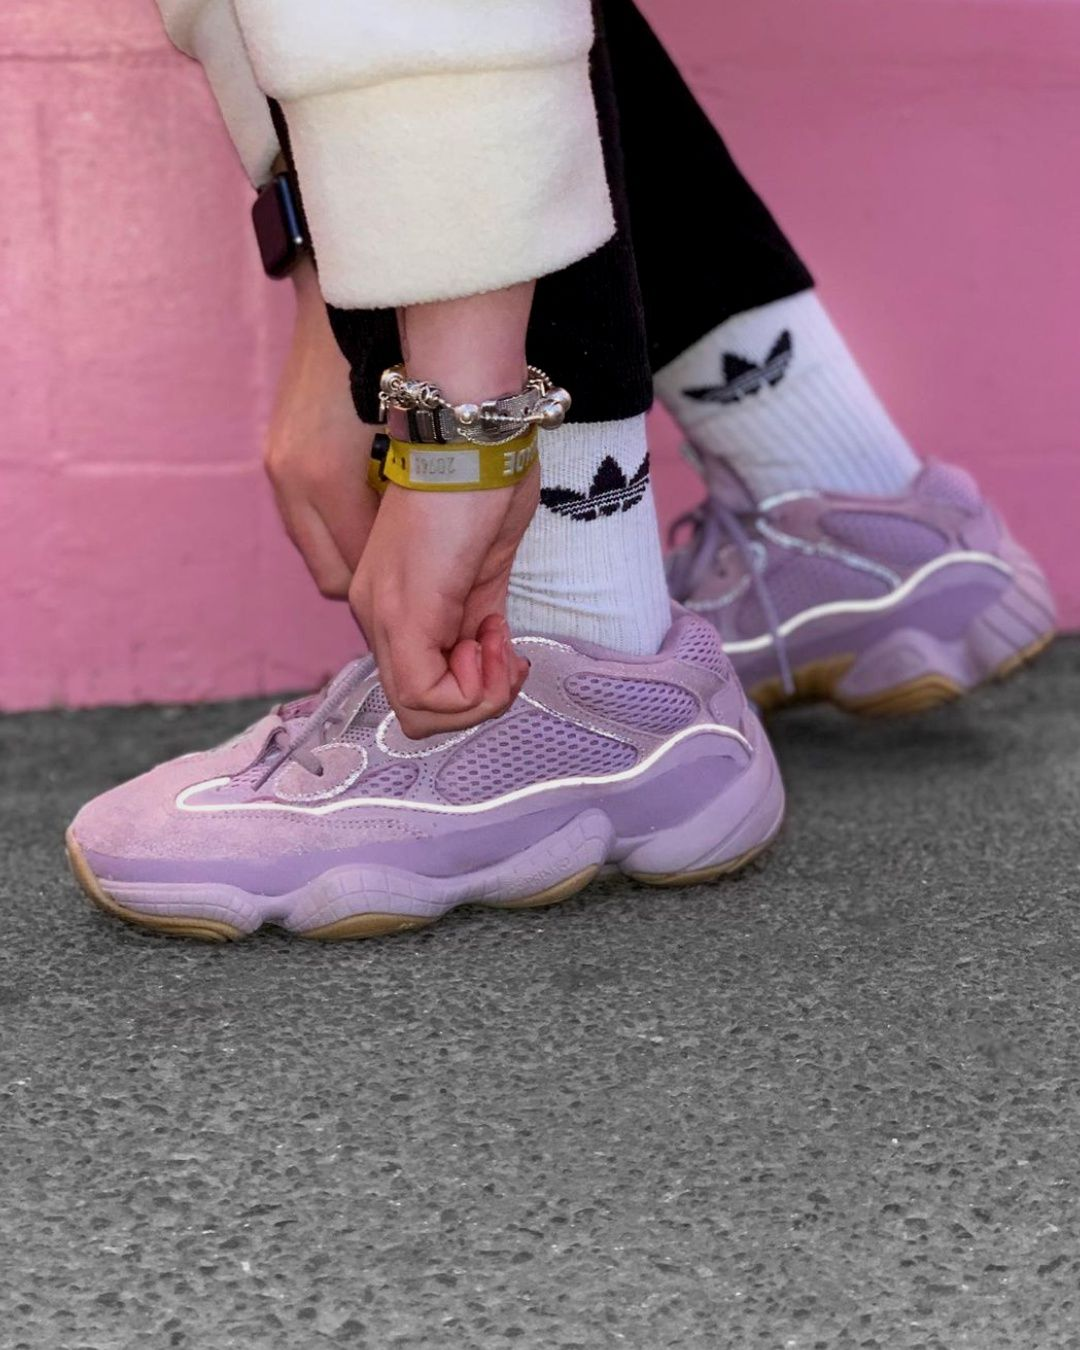 Adidas Yeezy 500 Soft Vision 2020 Thanksgiving Outifts Trends Fashion Shoes Sneakers In 2020 Sneakers Fashion Adidas Outfit Shoes Sneakers Men Fashion